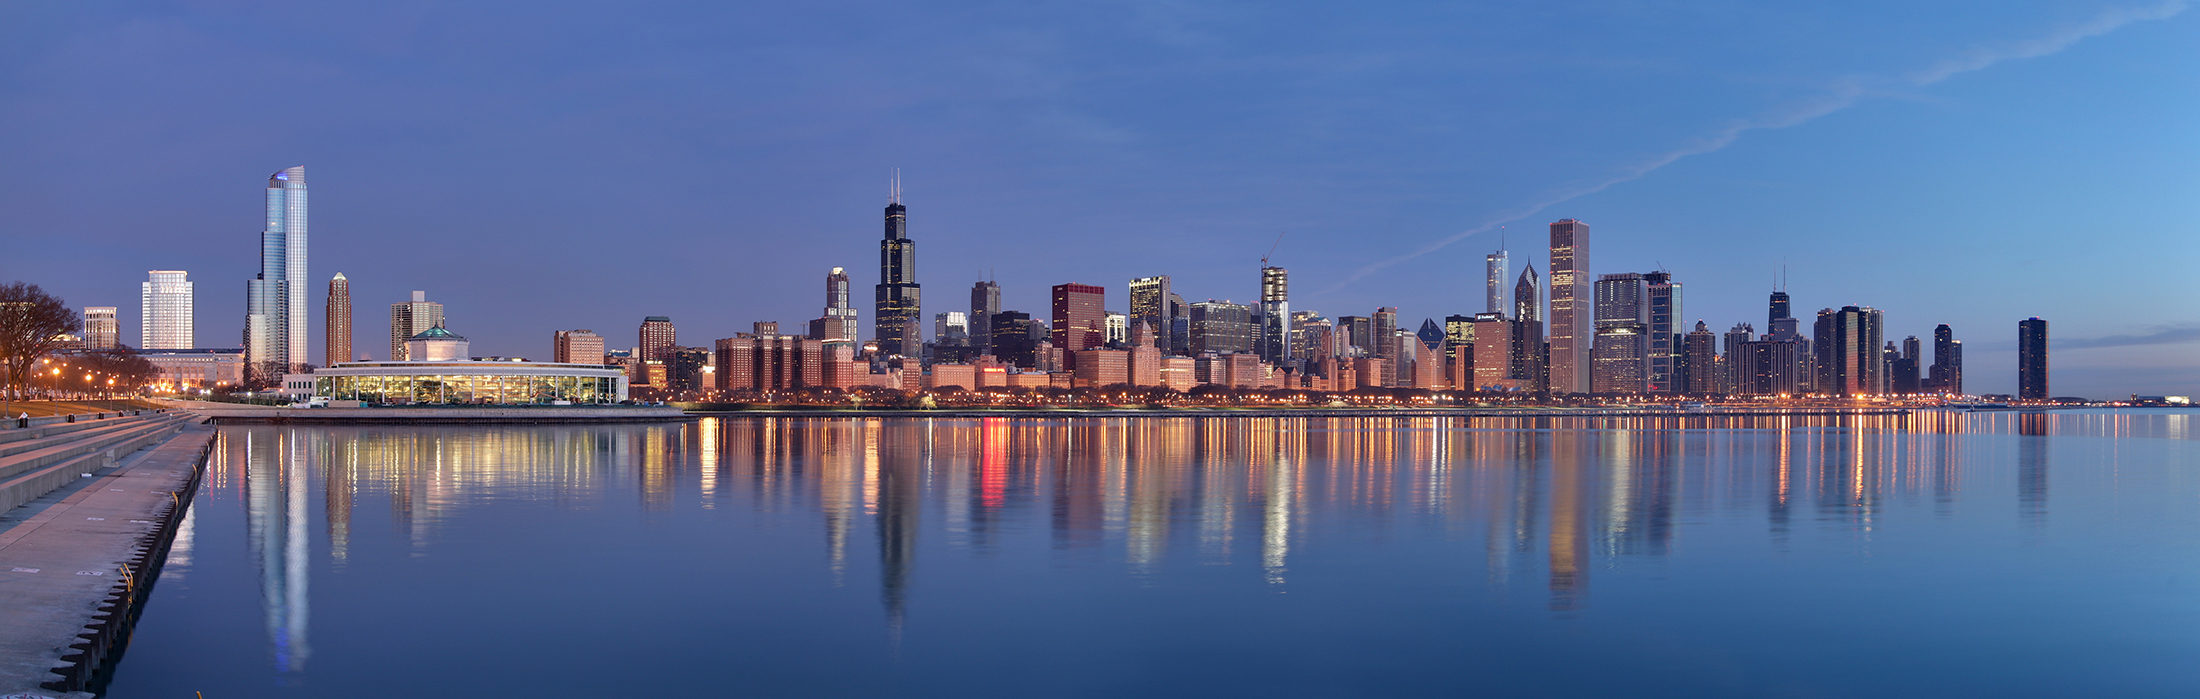 Chicago_sunrise_1-Sm